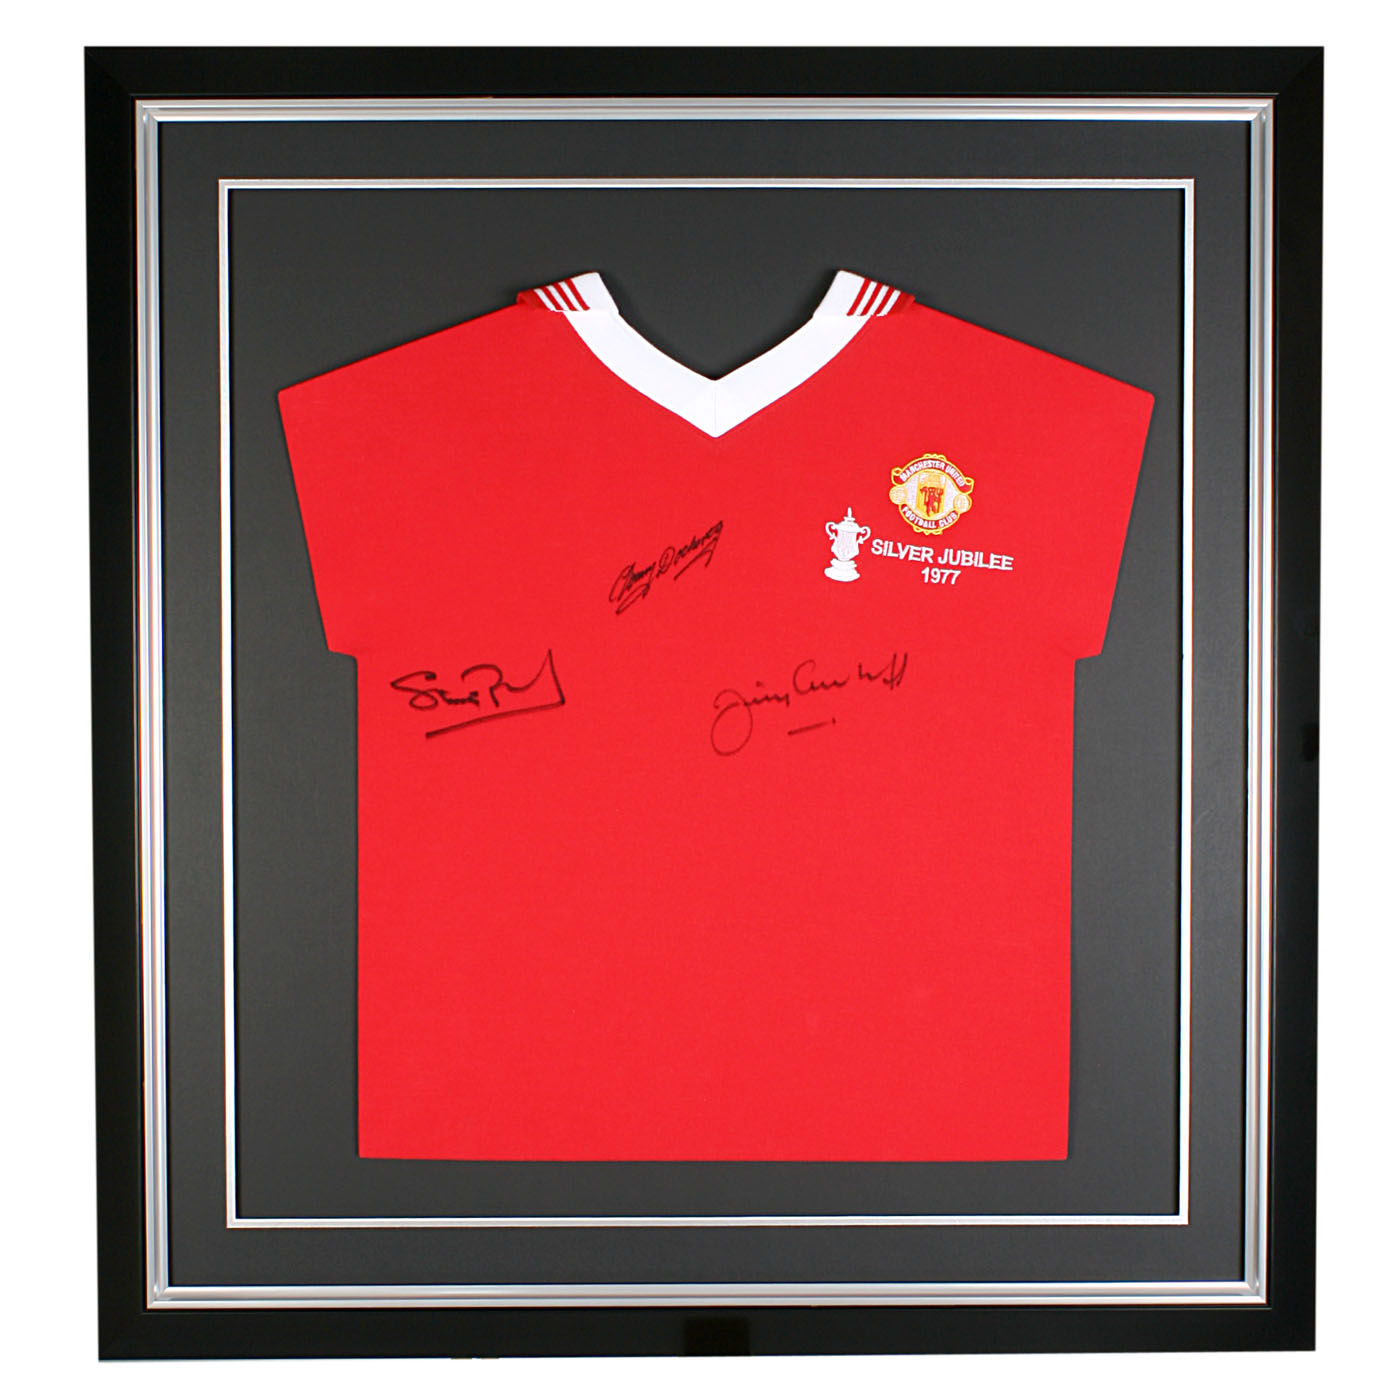 Signed 1977 Cup Final Manchester United Shirt - 29 x 27 Inch